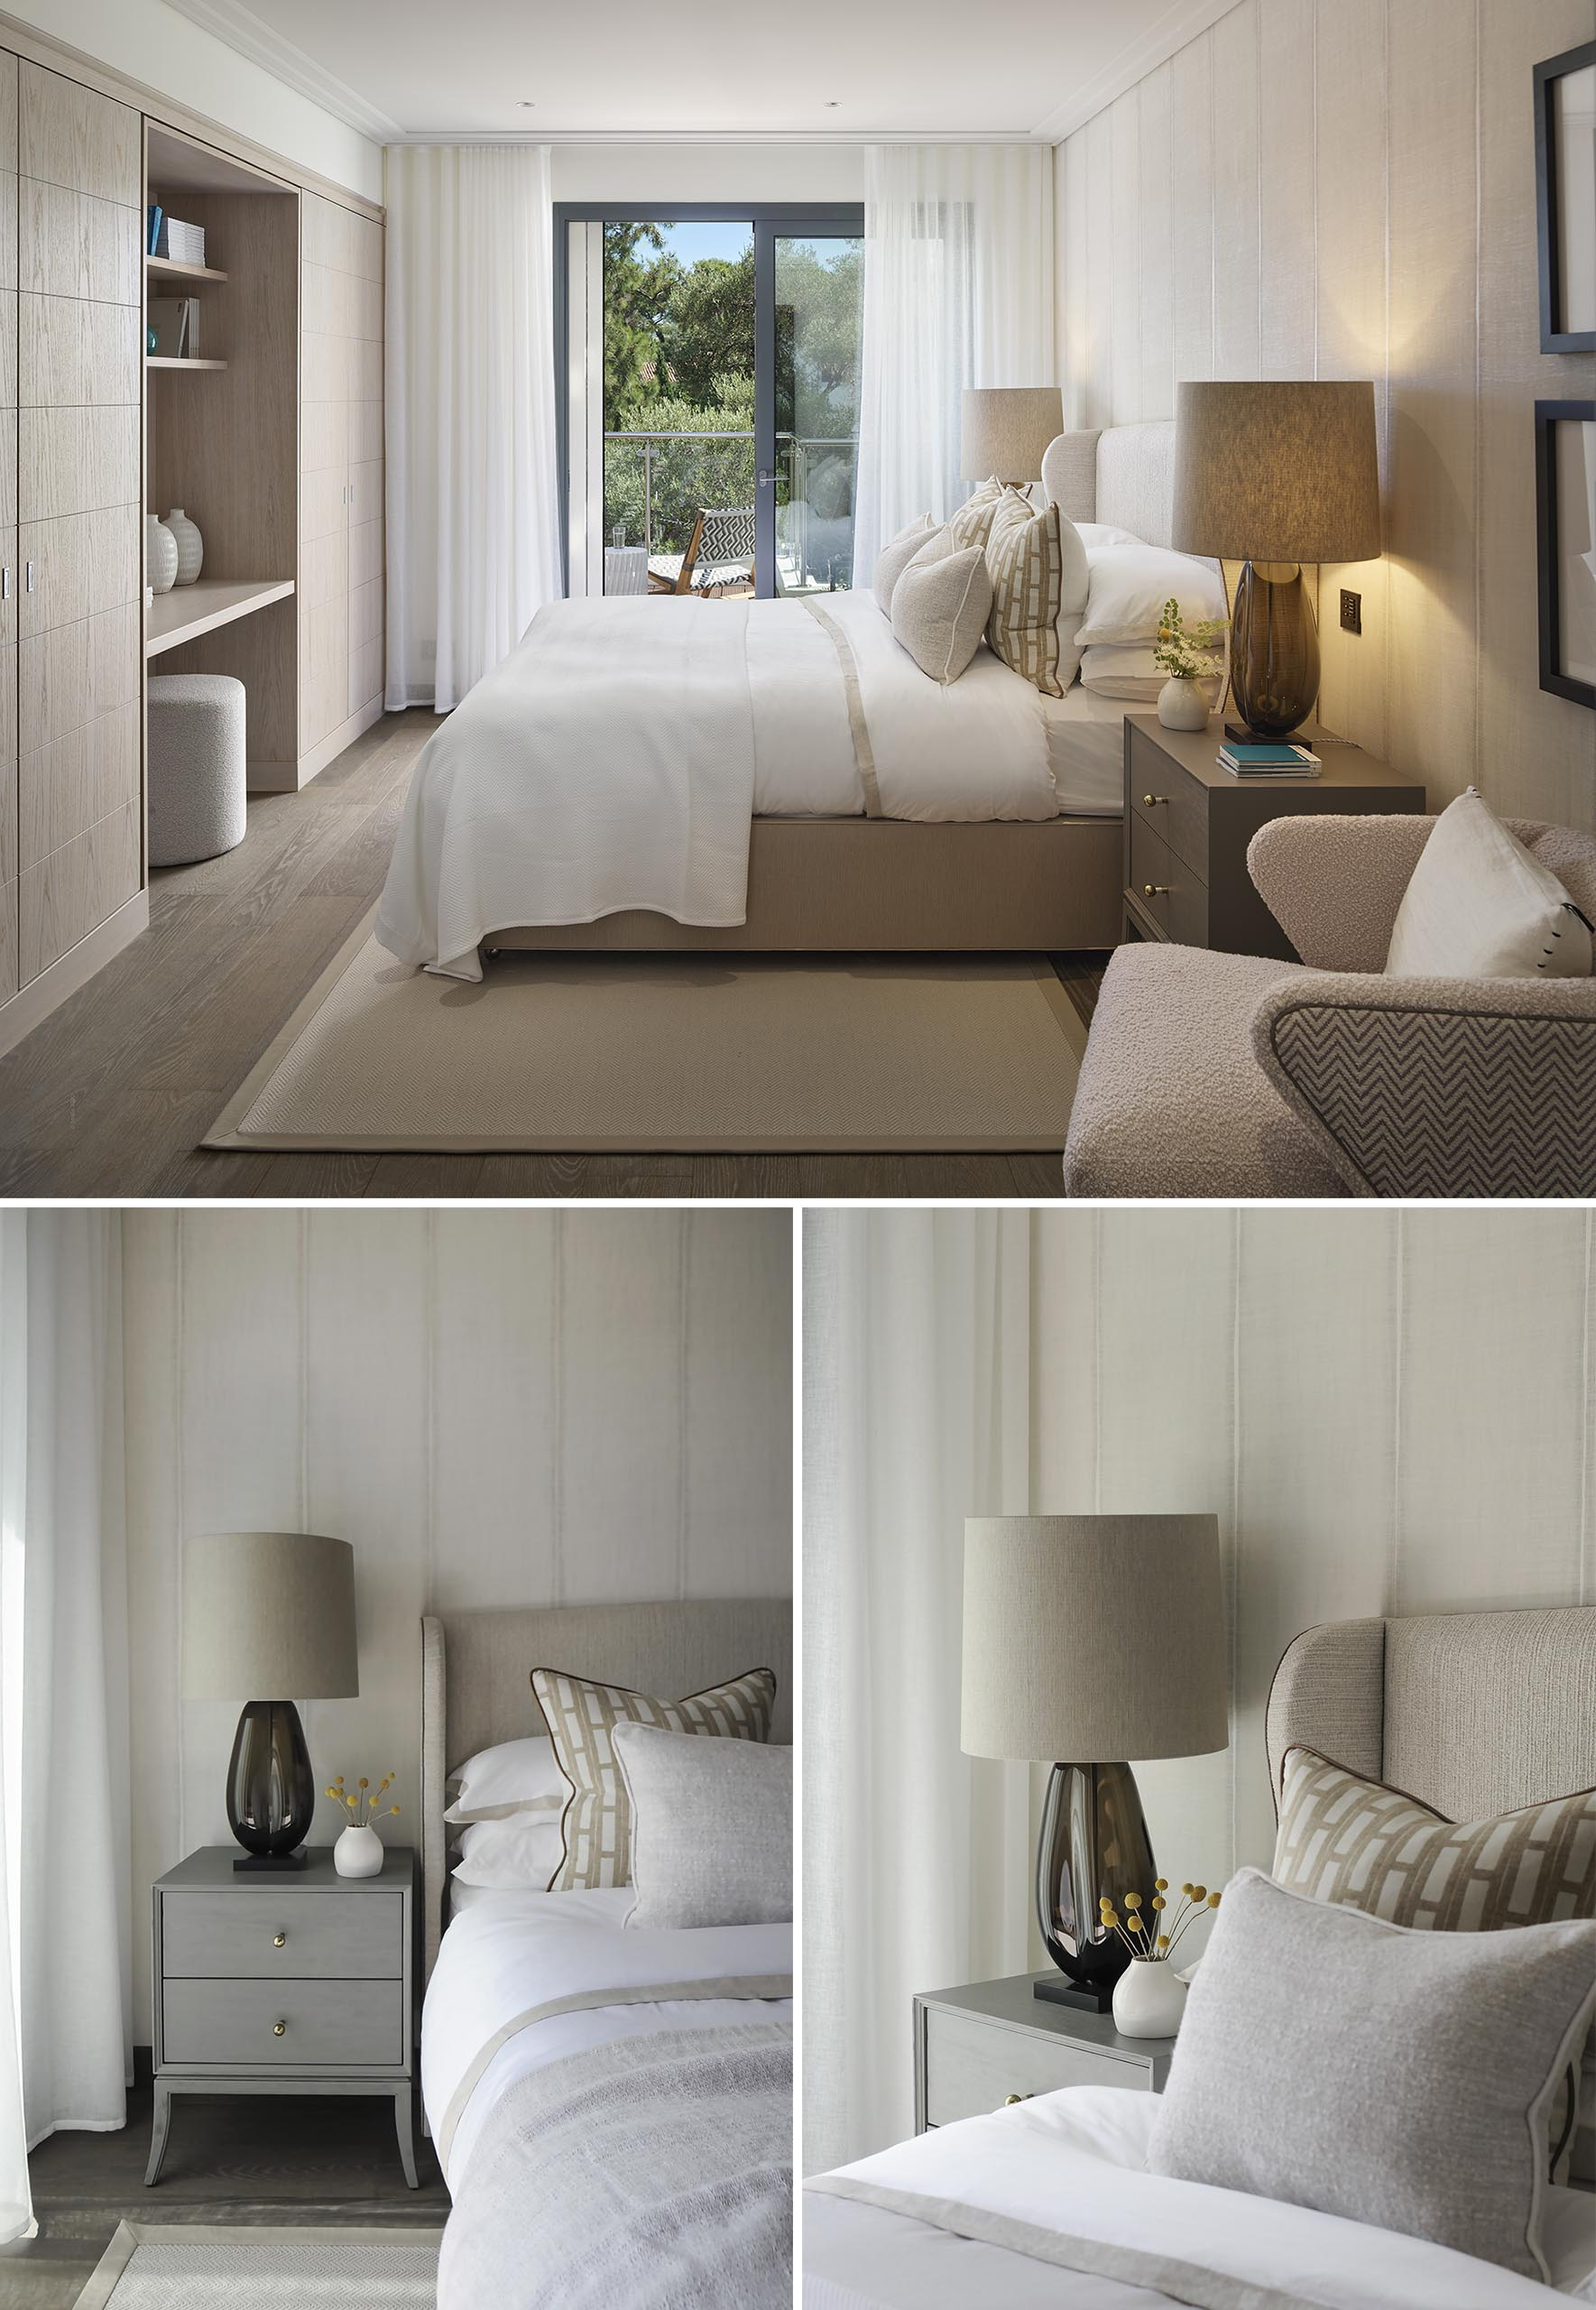 A bedroom with a neutral color palette.